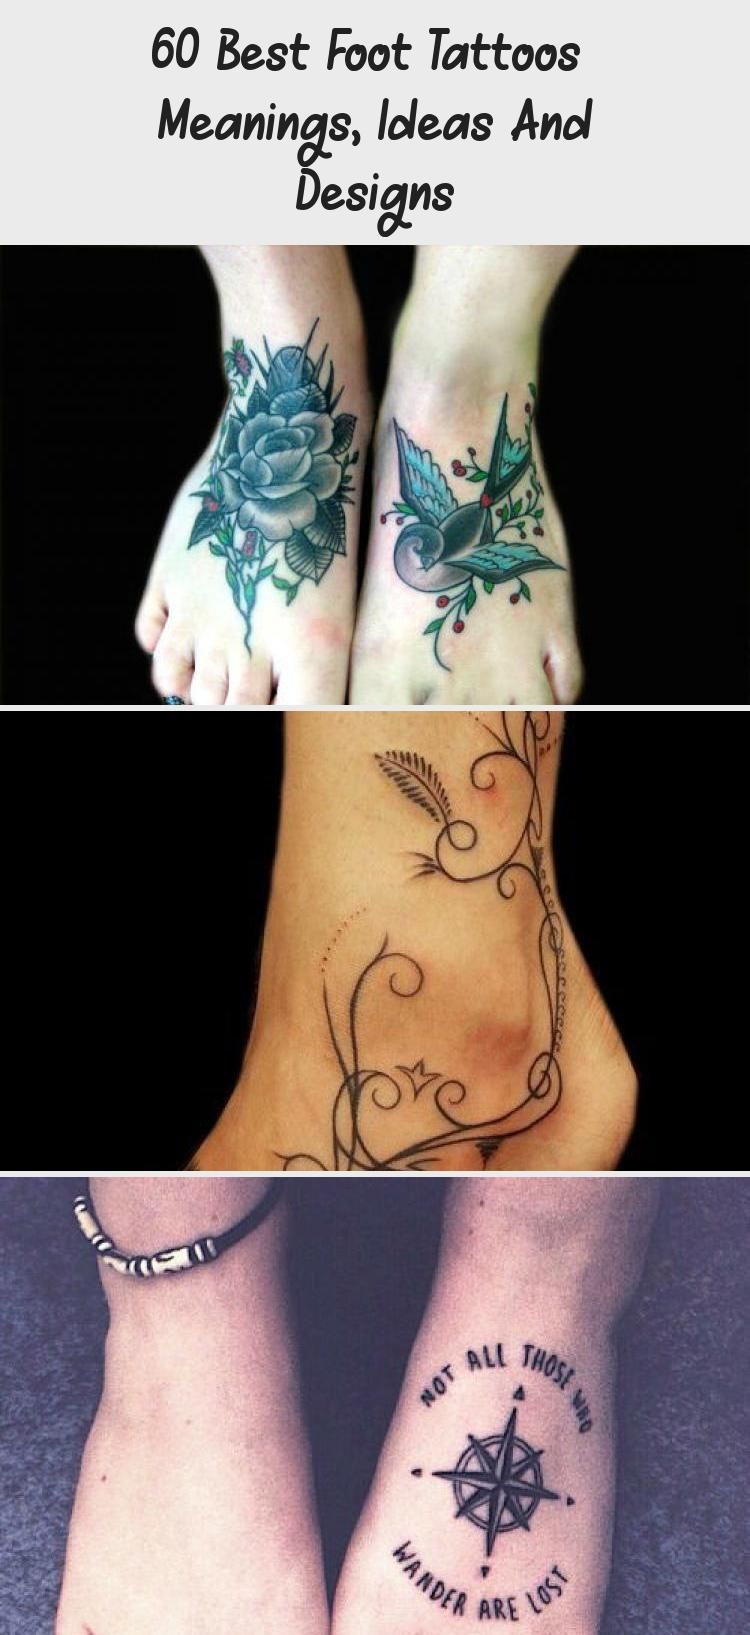 Foot tattoo meanings, symbolism, designs and ideas with